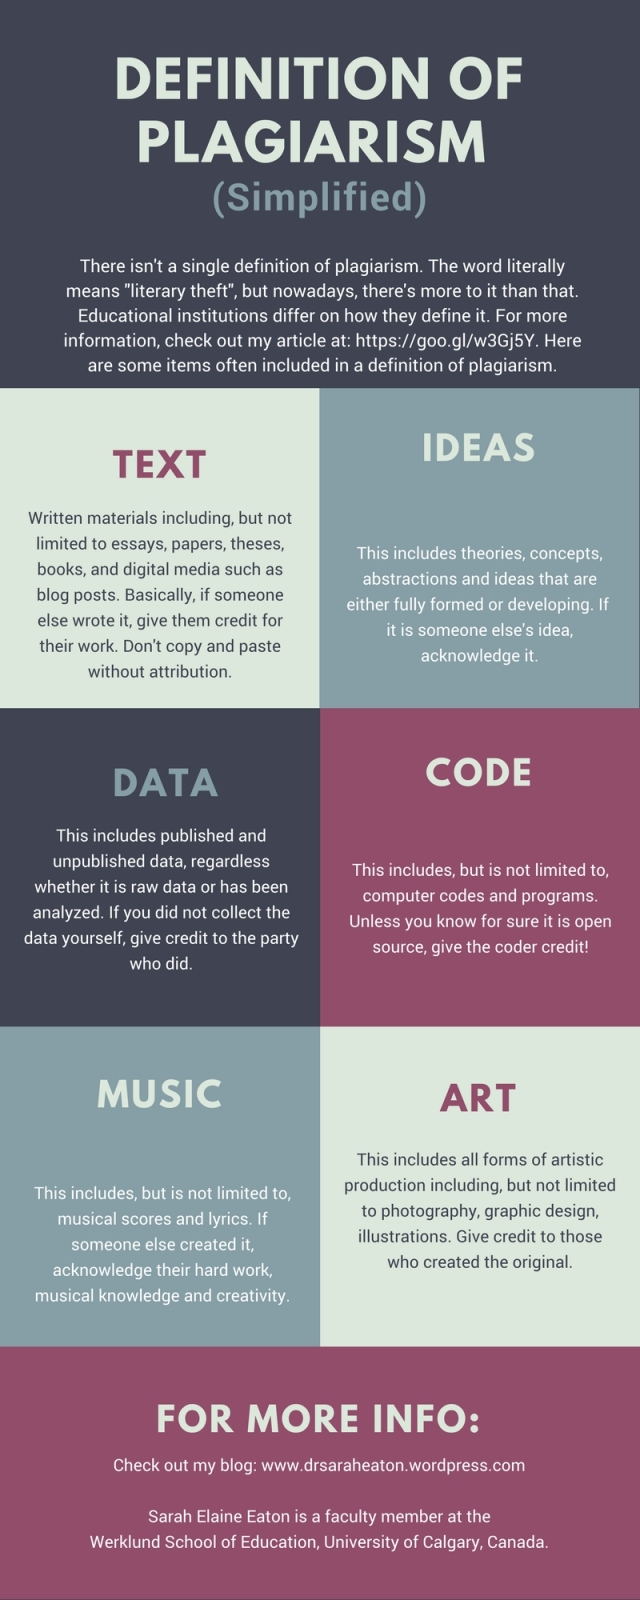 21st century definition of plagiarism | learning, teaching and